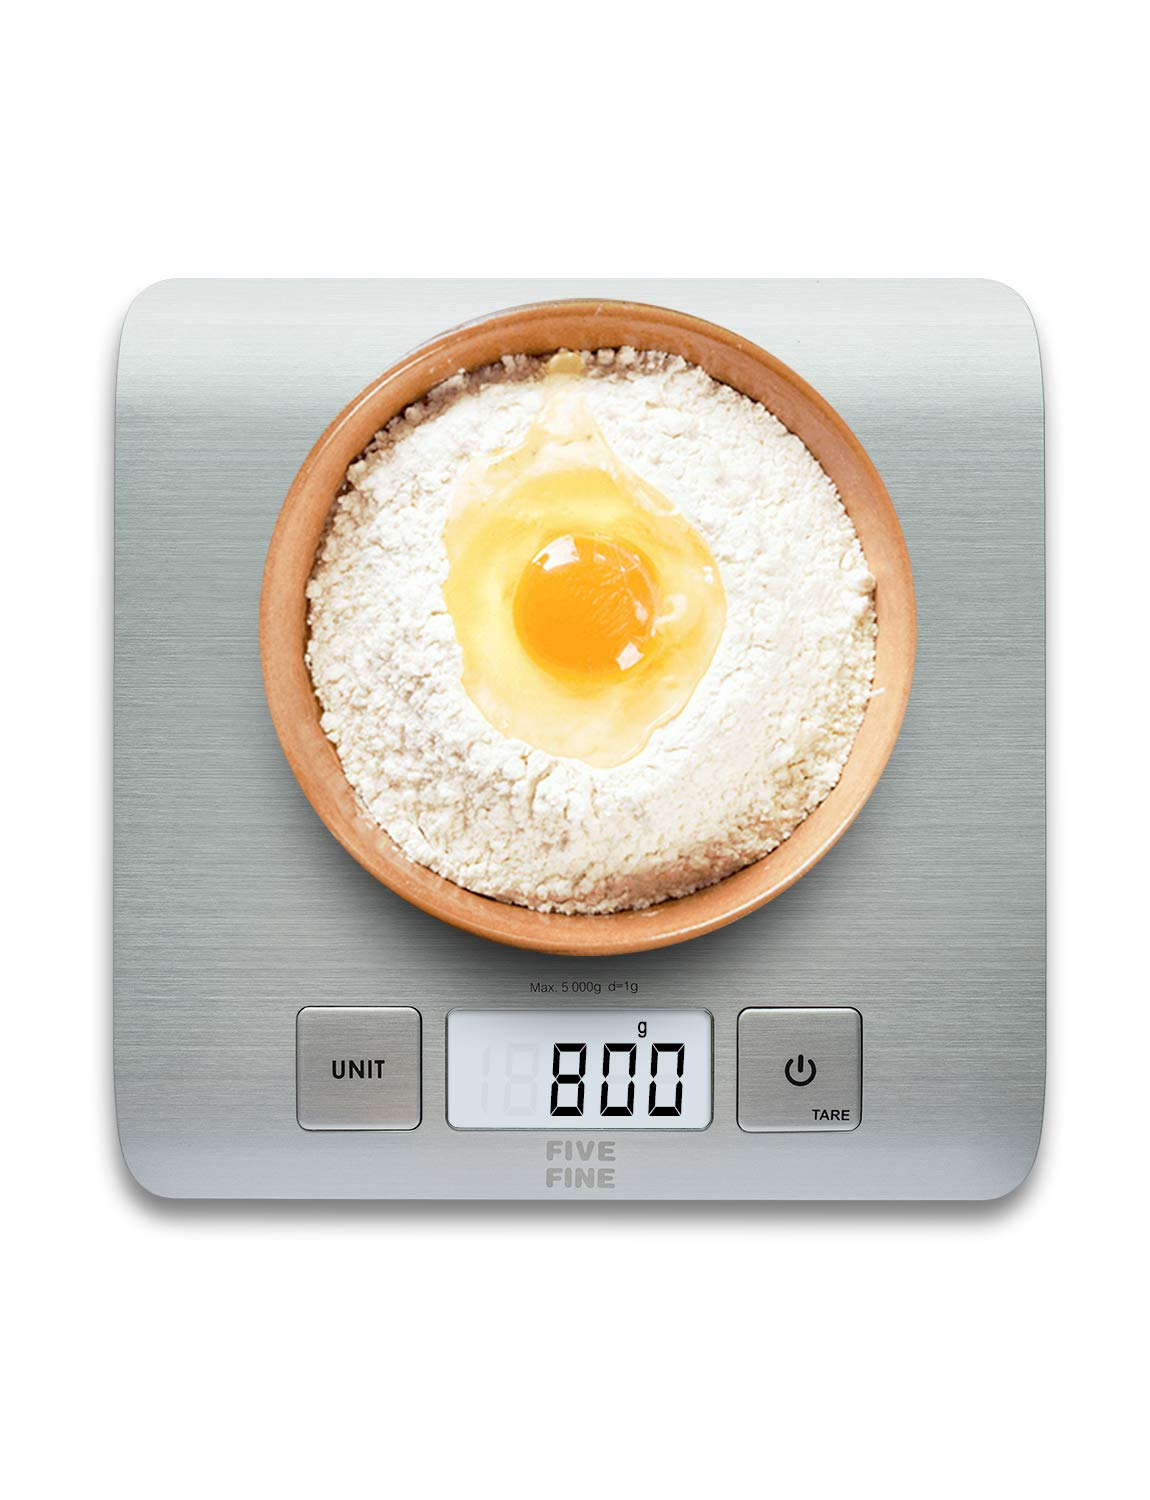 Kitchen Scale Digital Food Scale Grams and Ounces Digital Scale Multifunctional Stainless Steel Bakers Scale for 11Lb/5Kg, 1g Division, LCD Display, Batteries Included, Silver